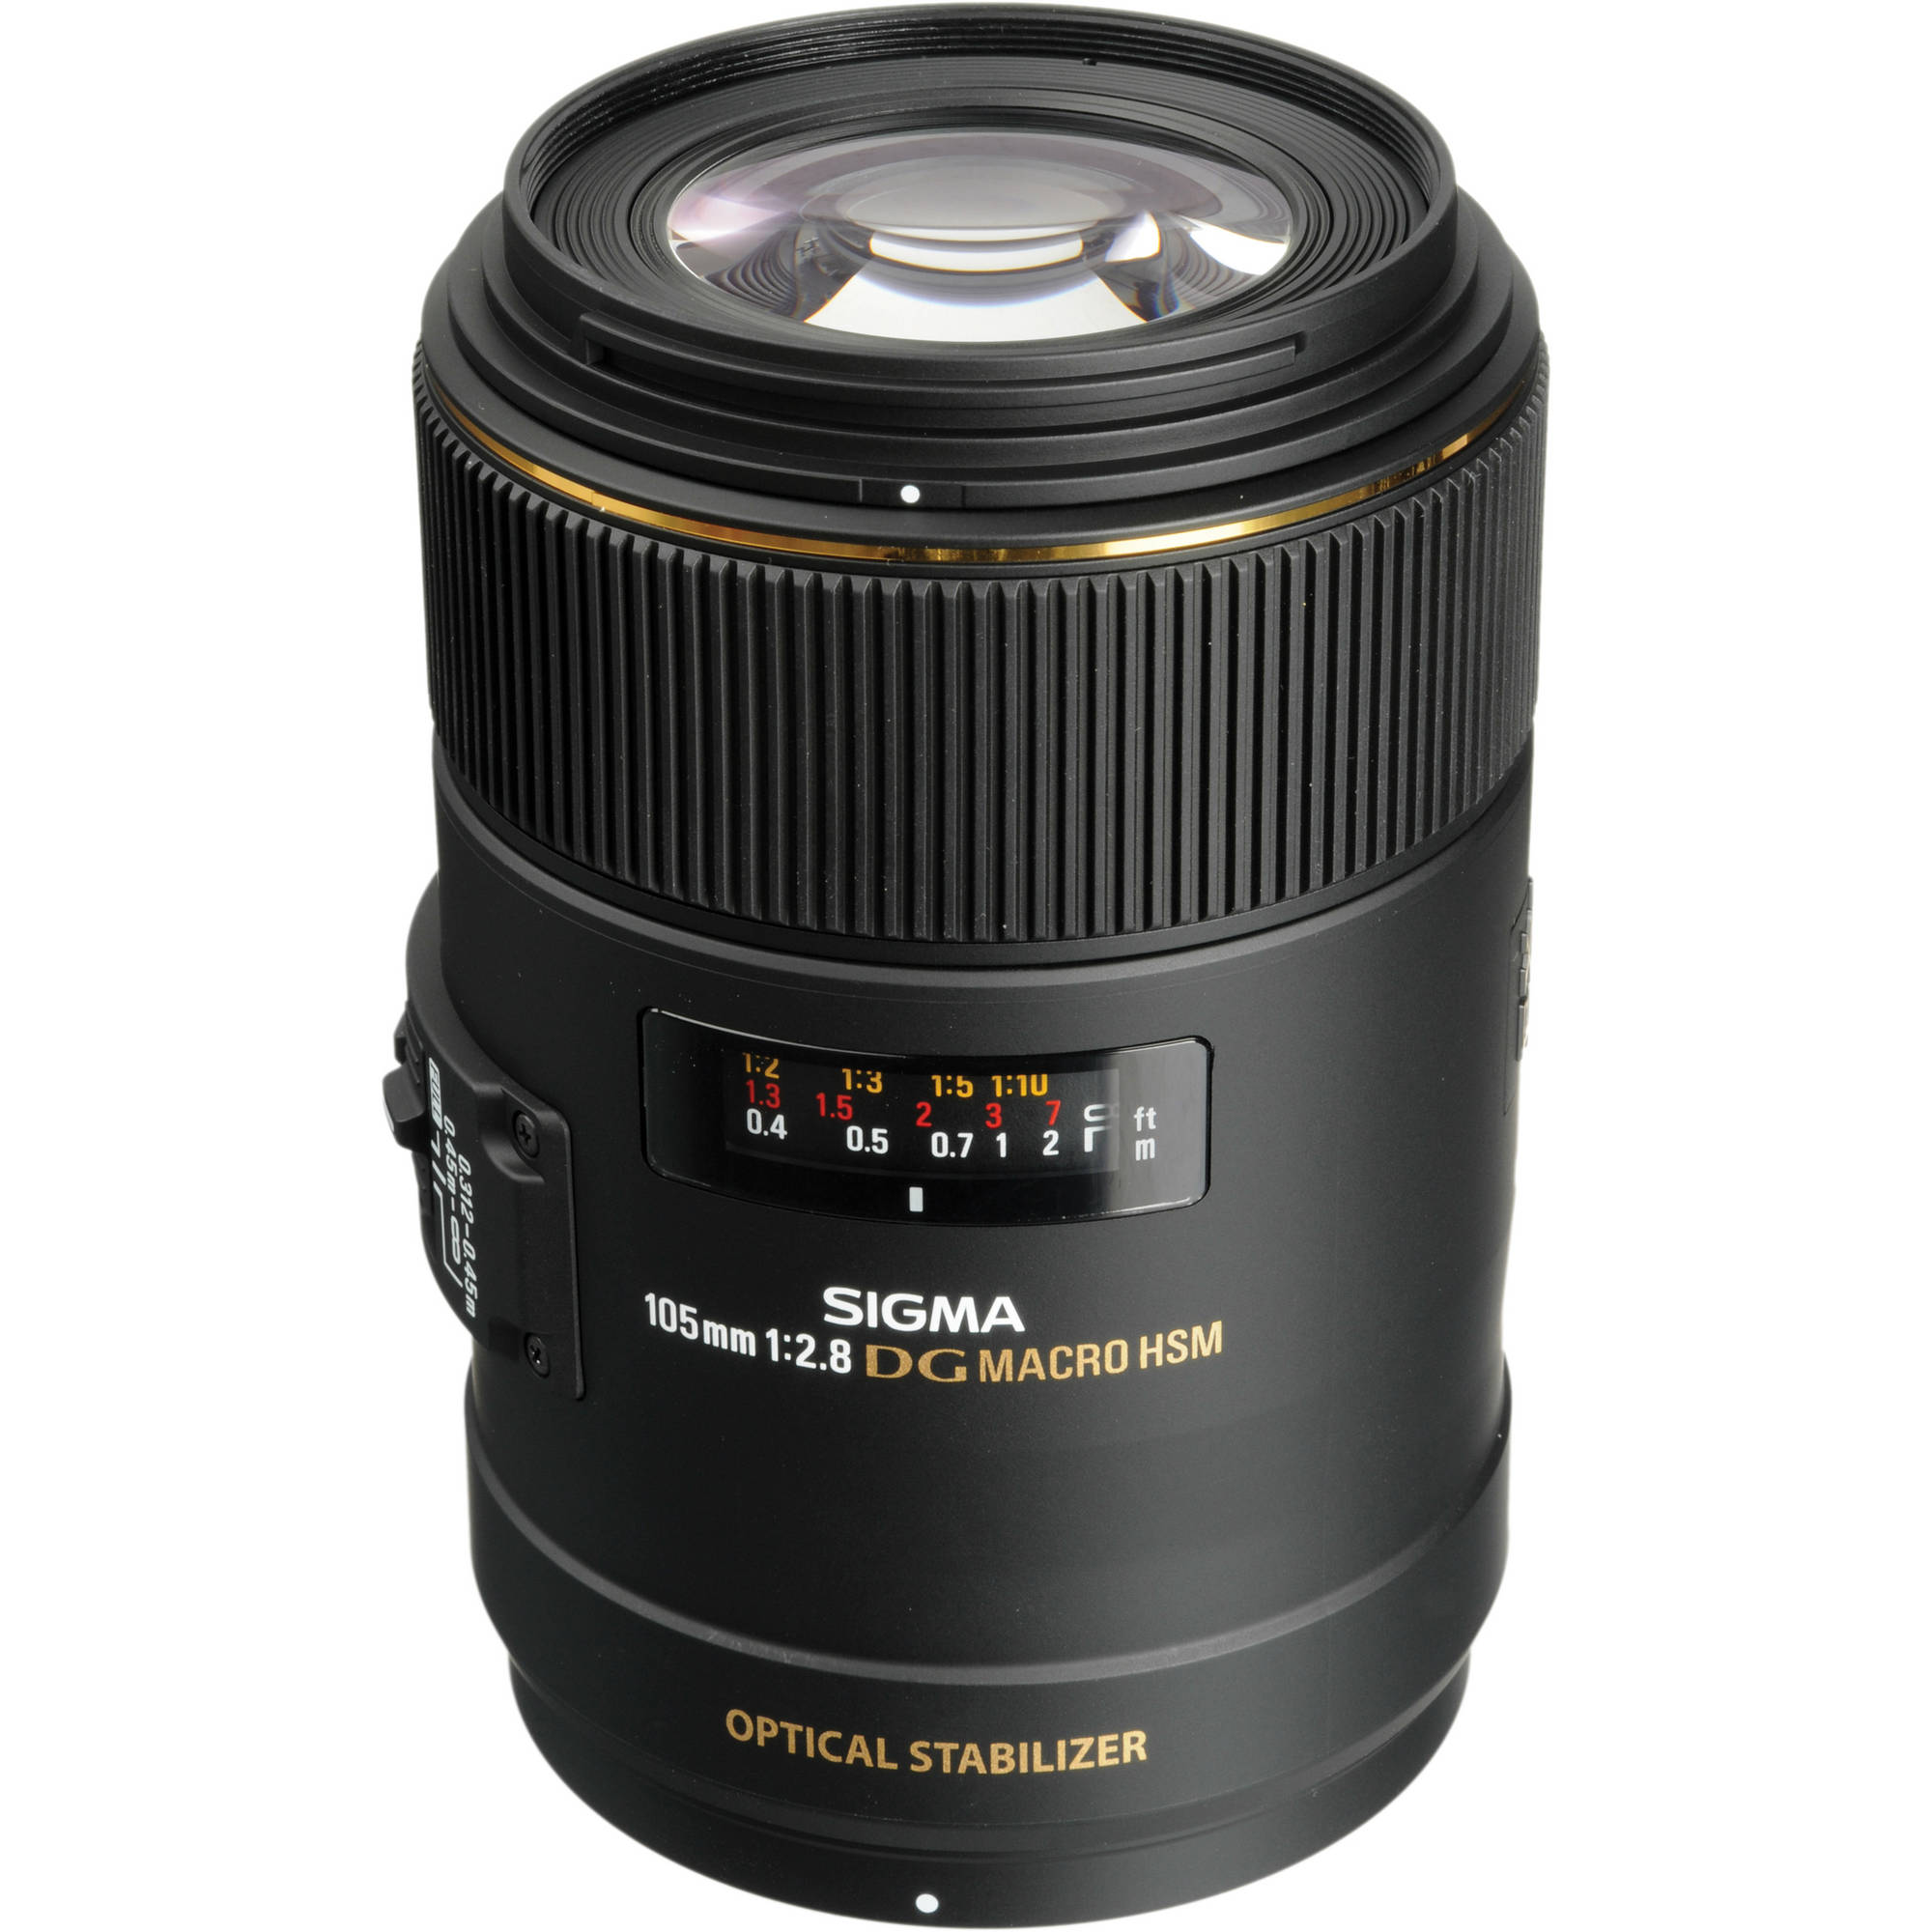 Image of Sigma AF 105mm f/2.8 DG OS Macro Lens For Canon Mount